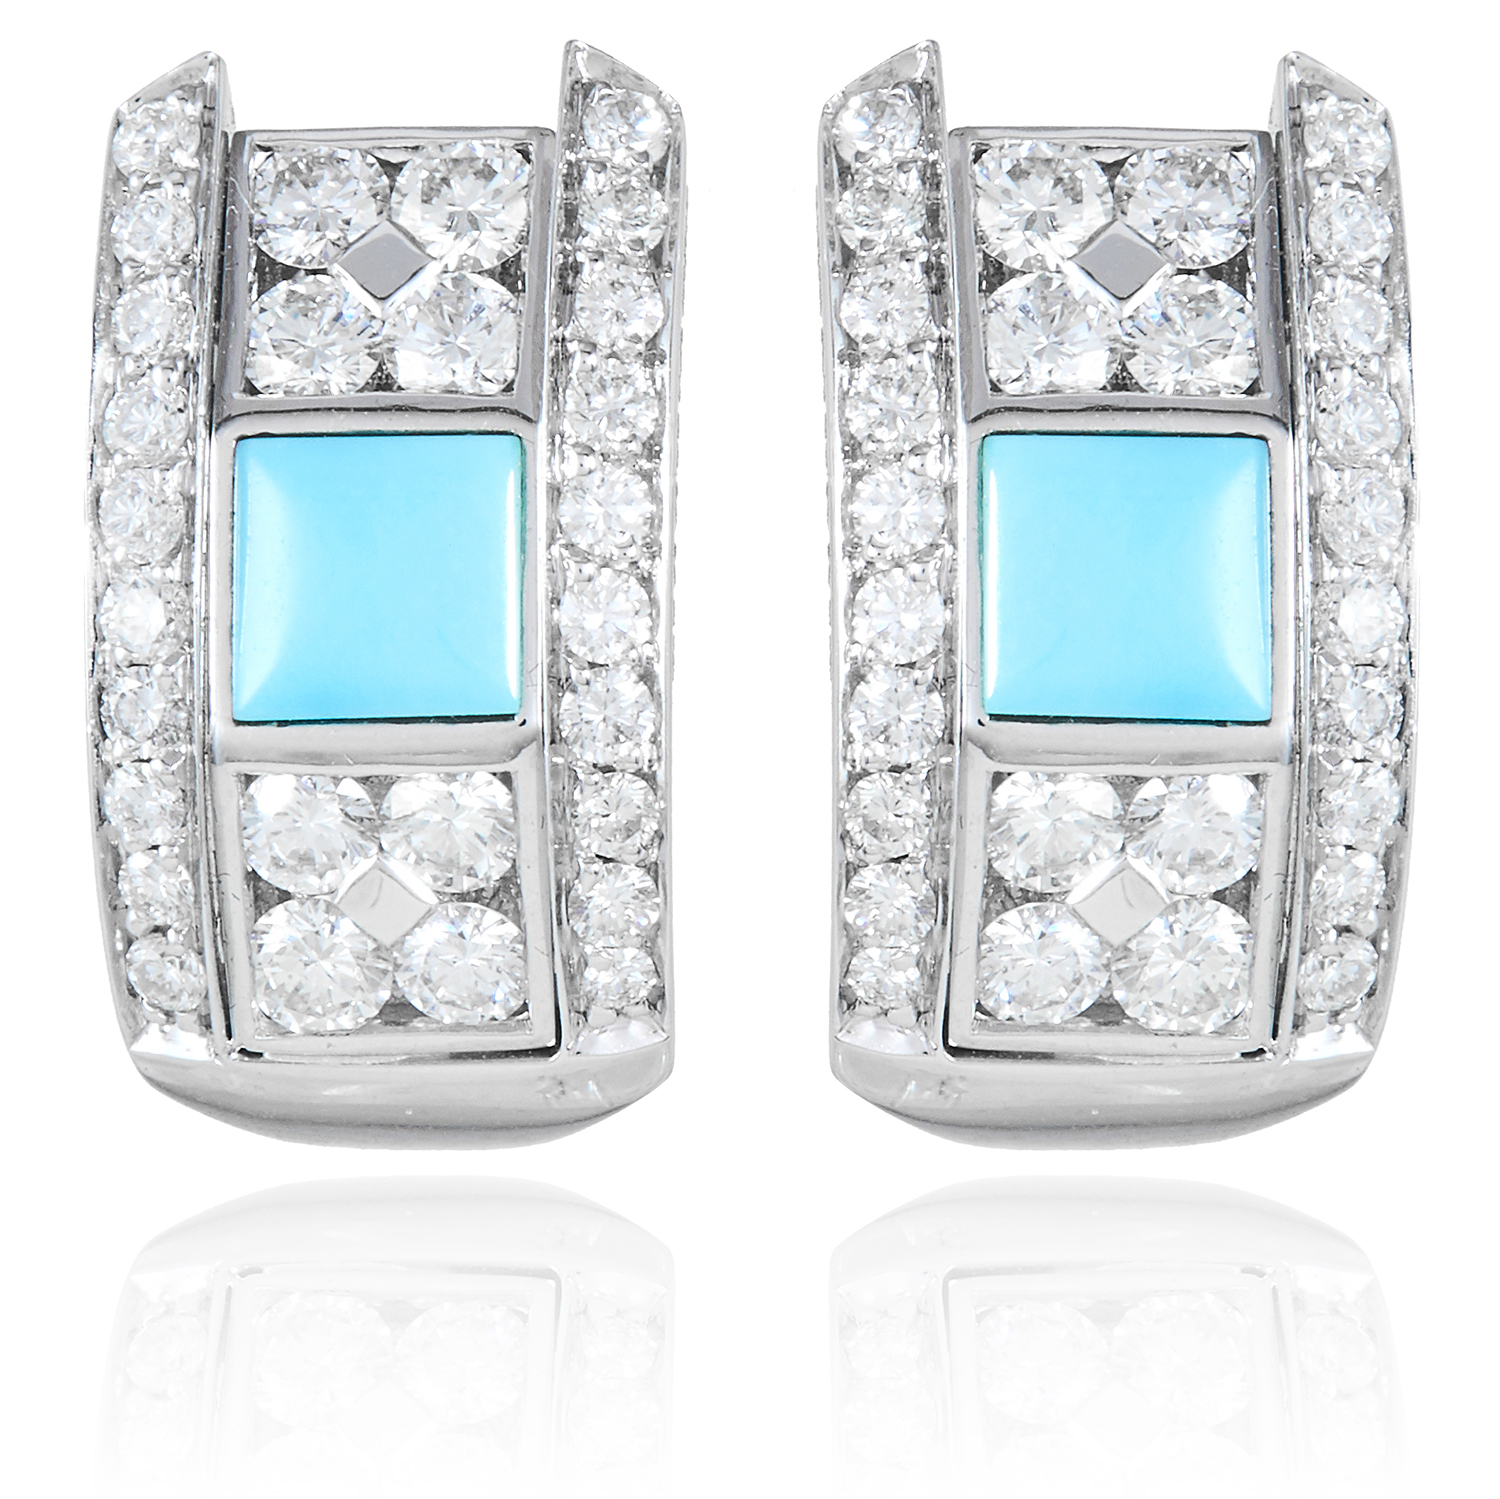 A PAIR OF TURQUOISE AND DIAMOND EARRINGS, PICCHIOTTI in 18ct white gold, each set with a square